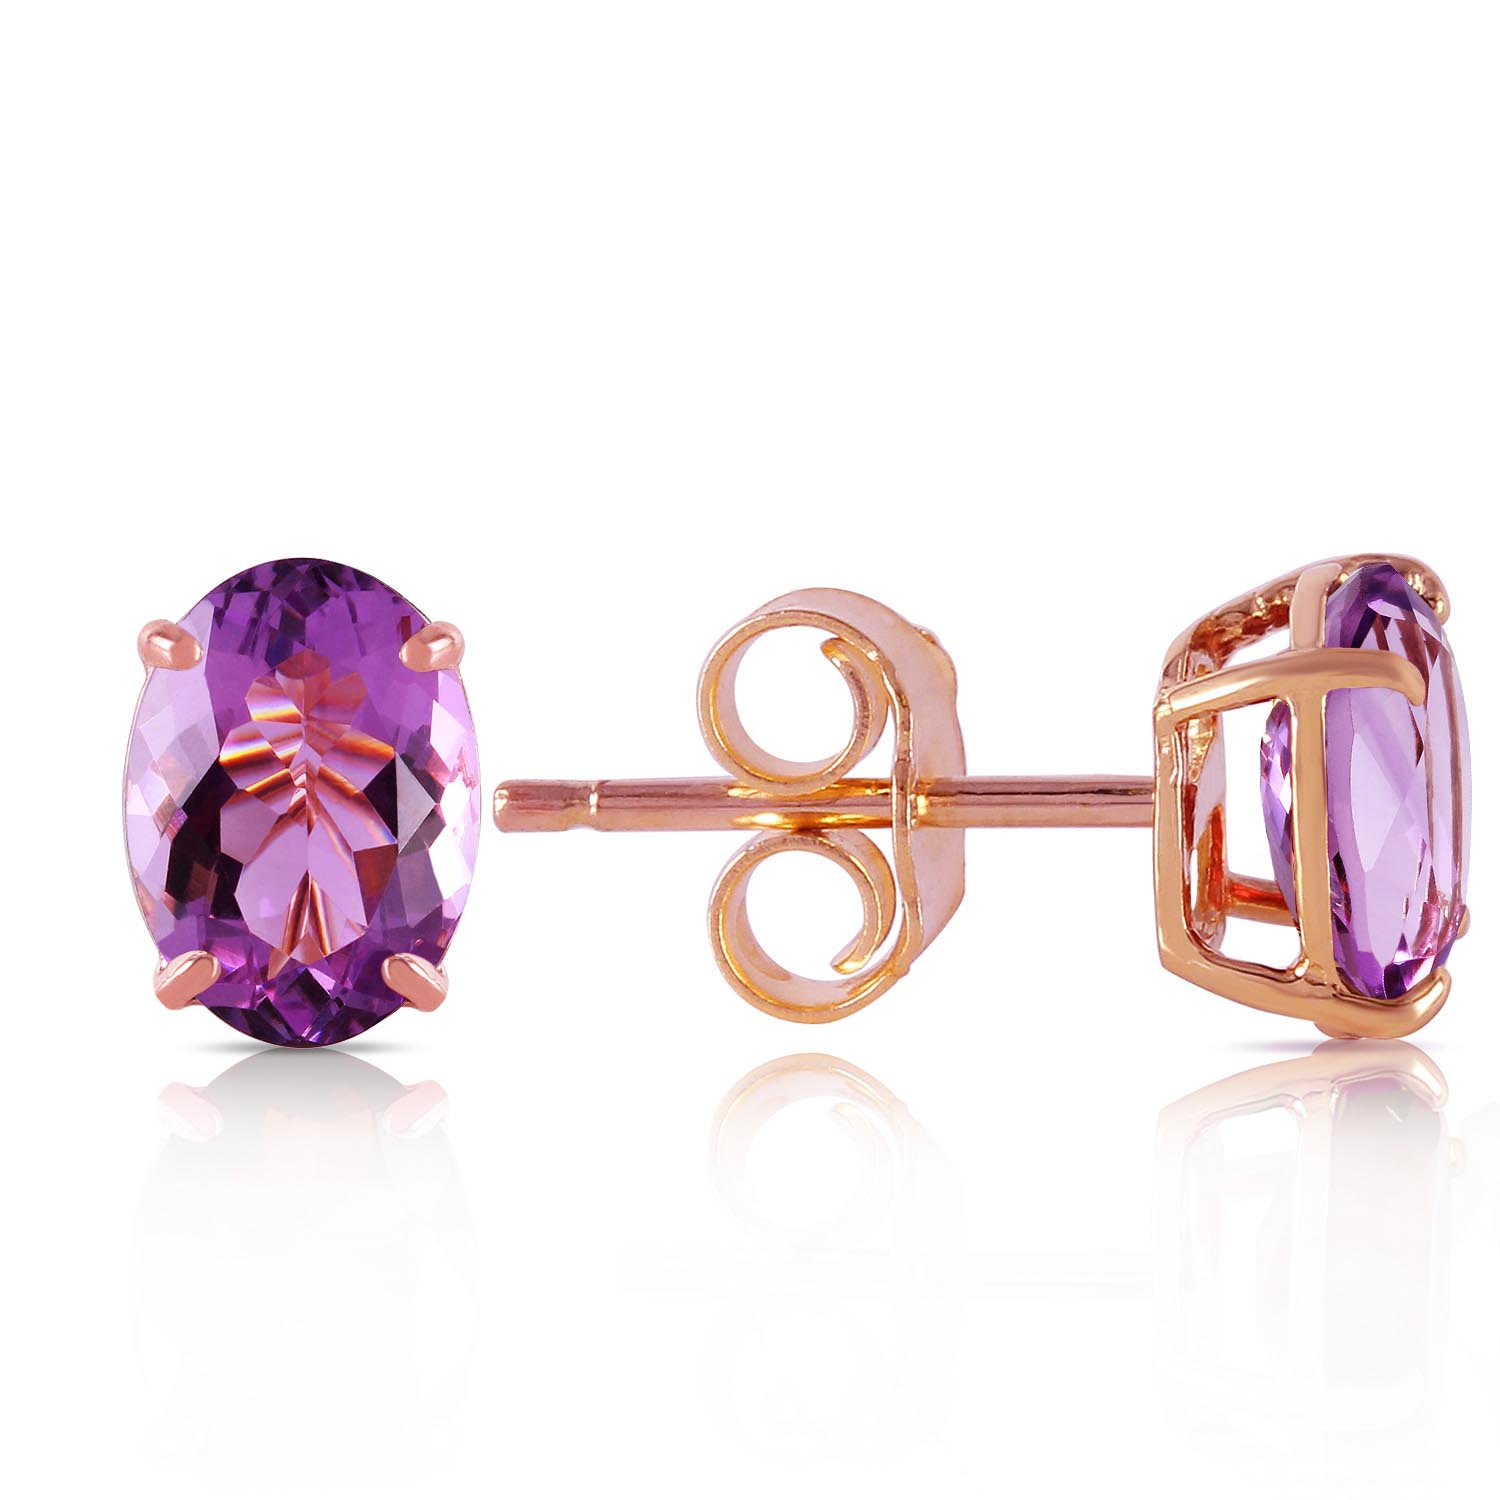 Amethyst Stud Earrings 1.8ctw in 9ct Rose Gold